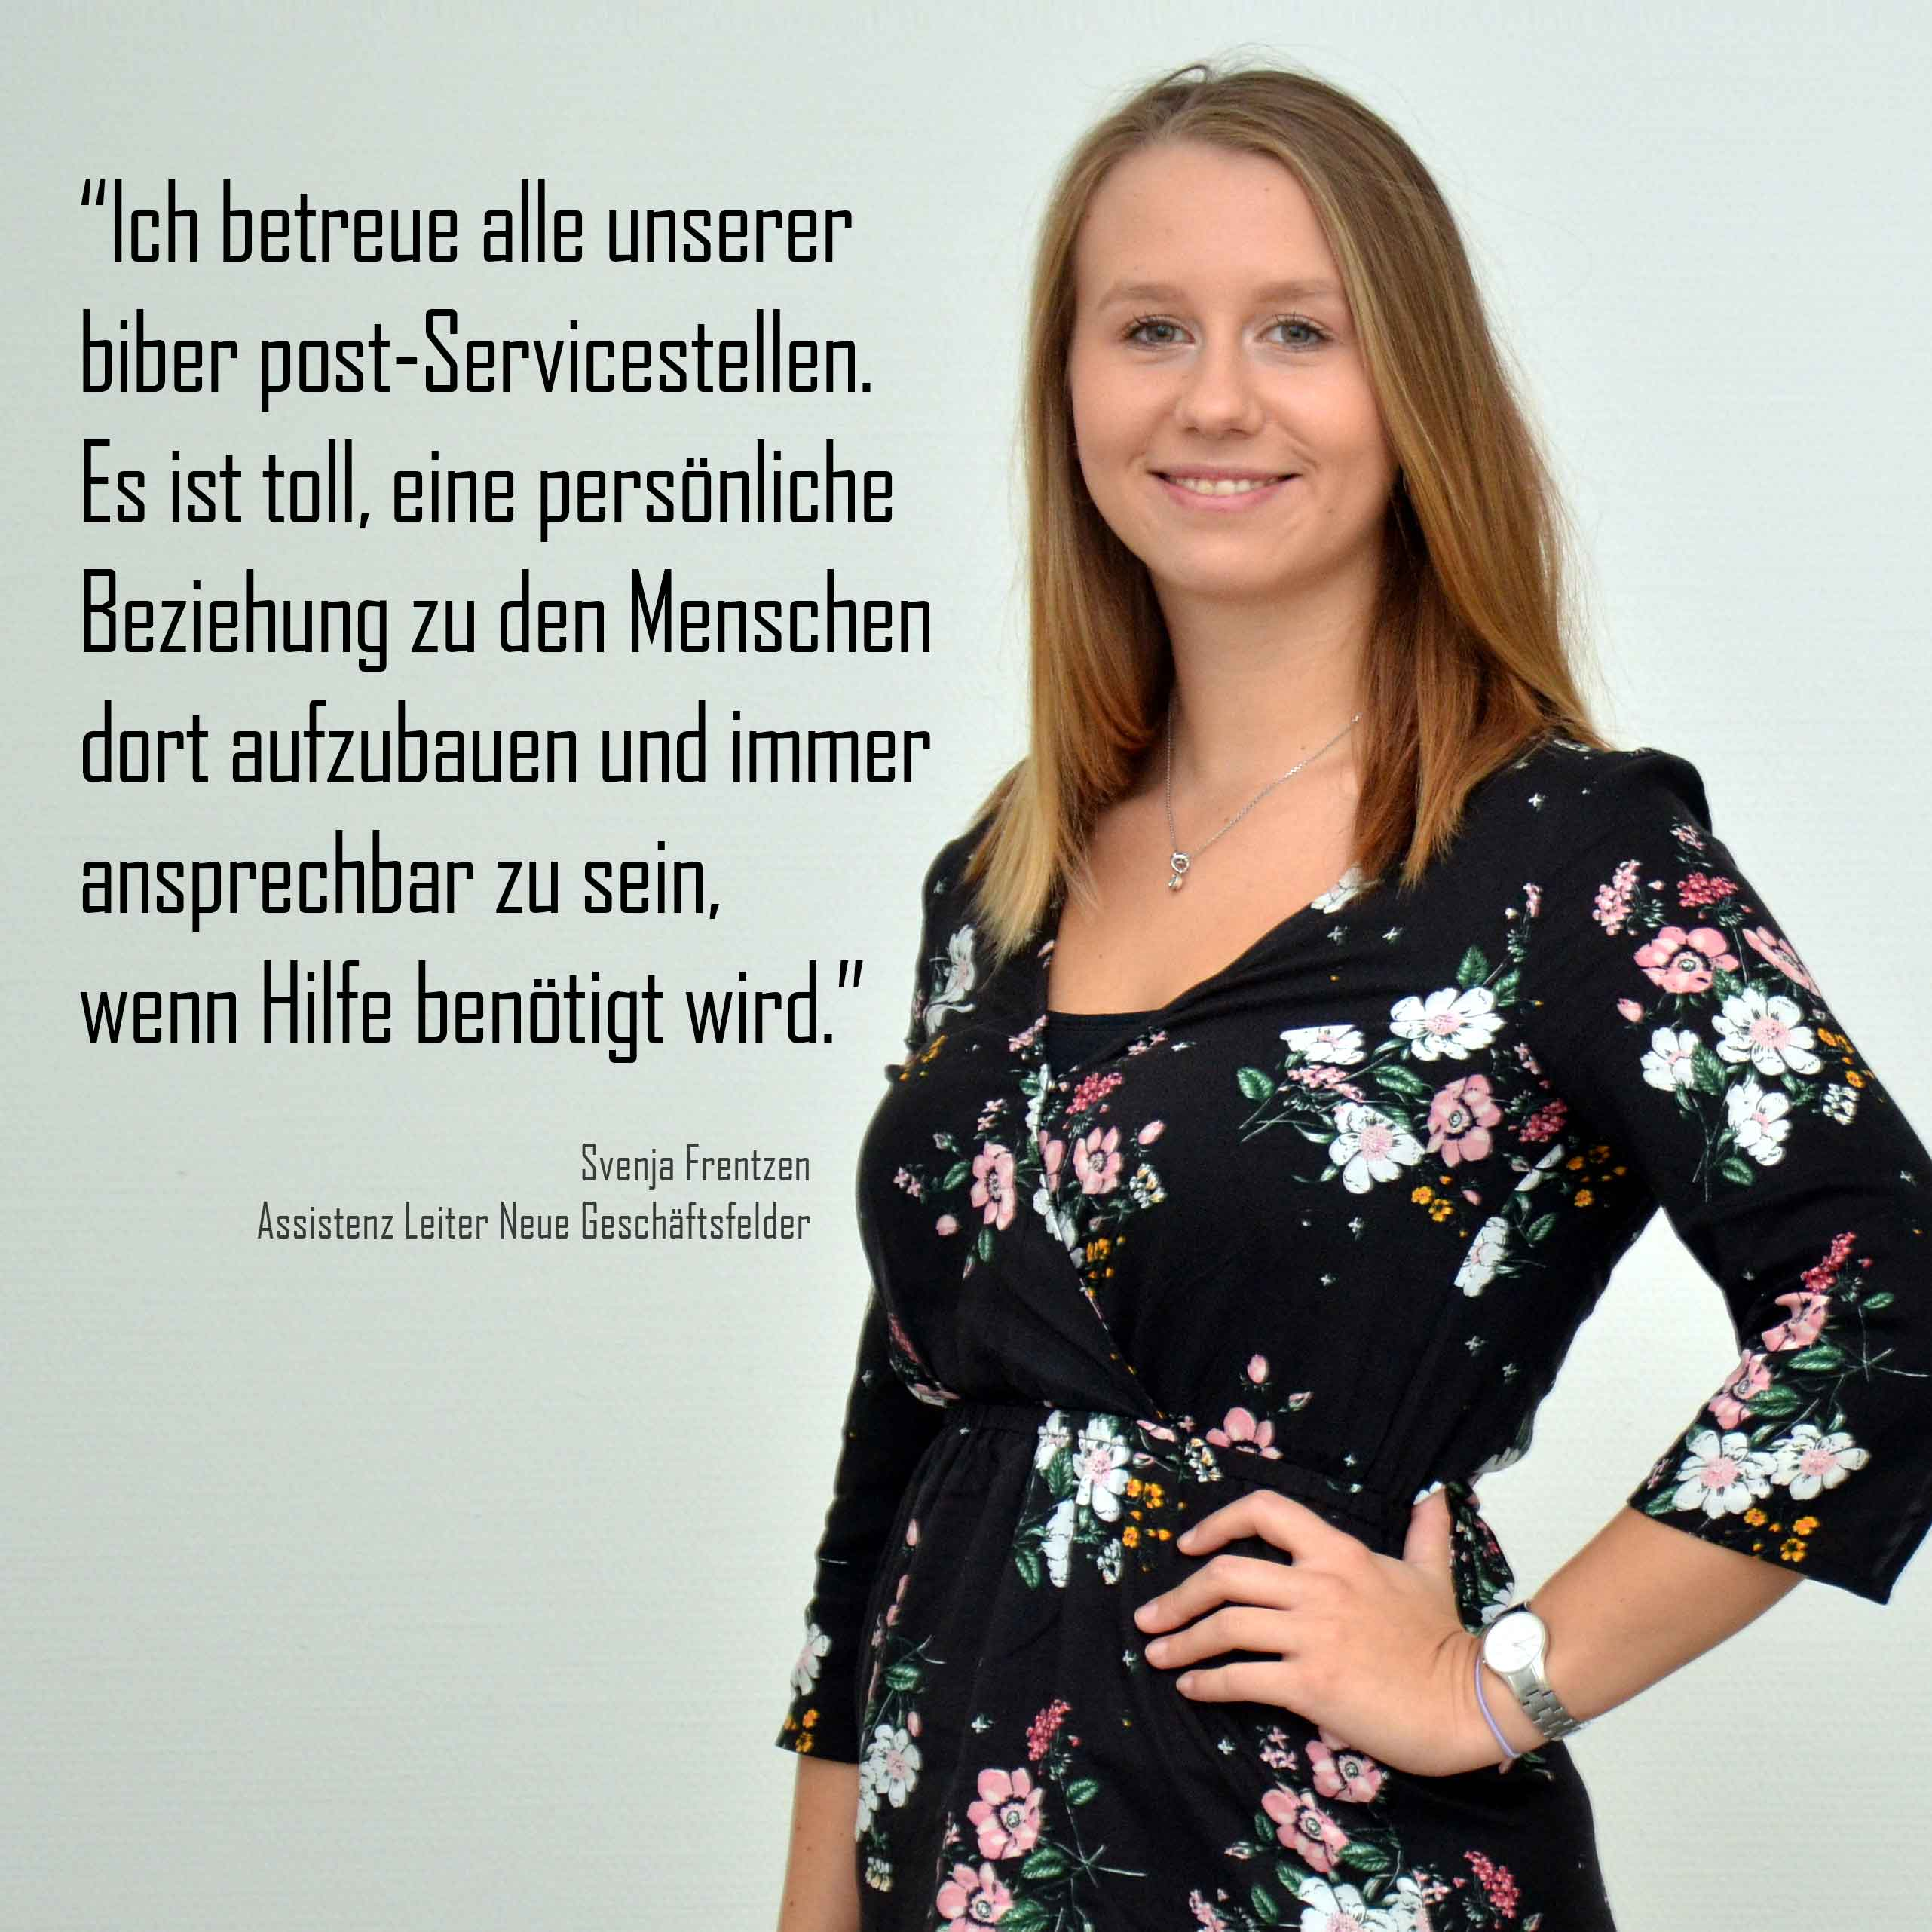 Svenja Frentzen - Statement zur biber post